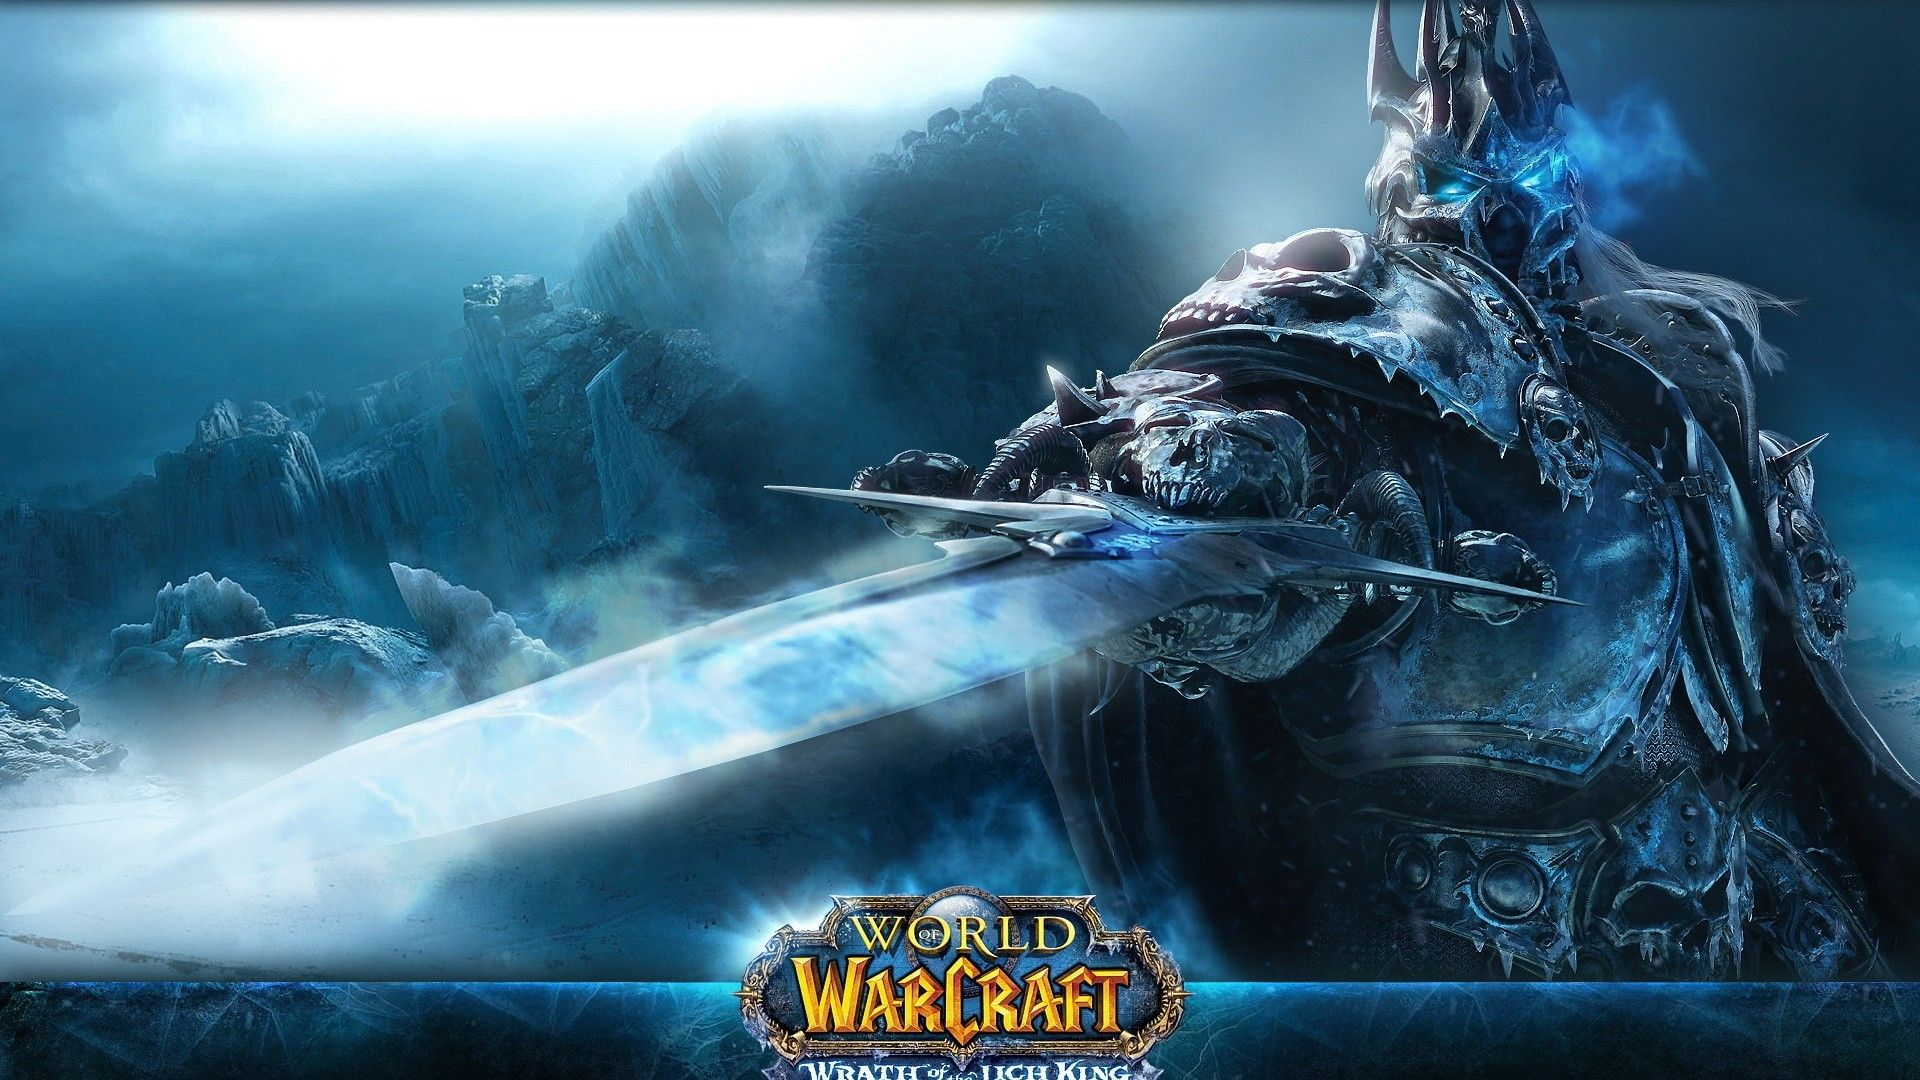 World Of Warcraft Wallpapers High Definition Gamers Wallpaper 1080p อะน เมะ